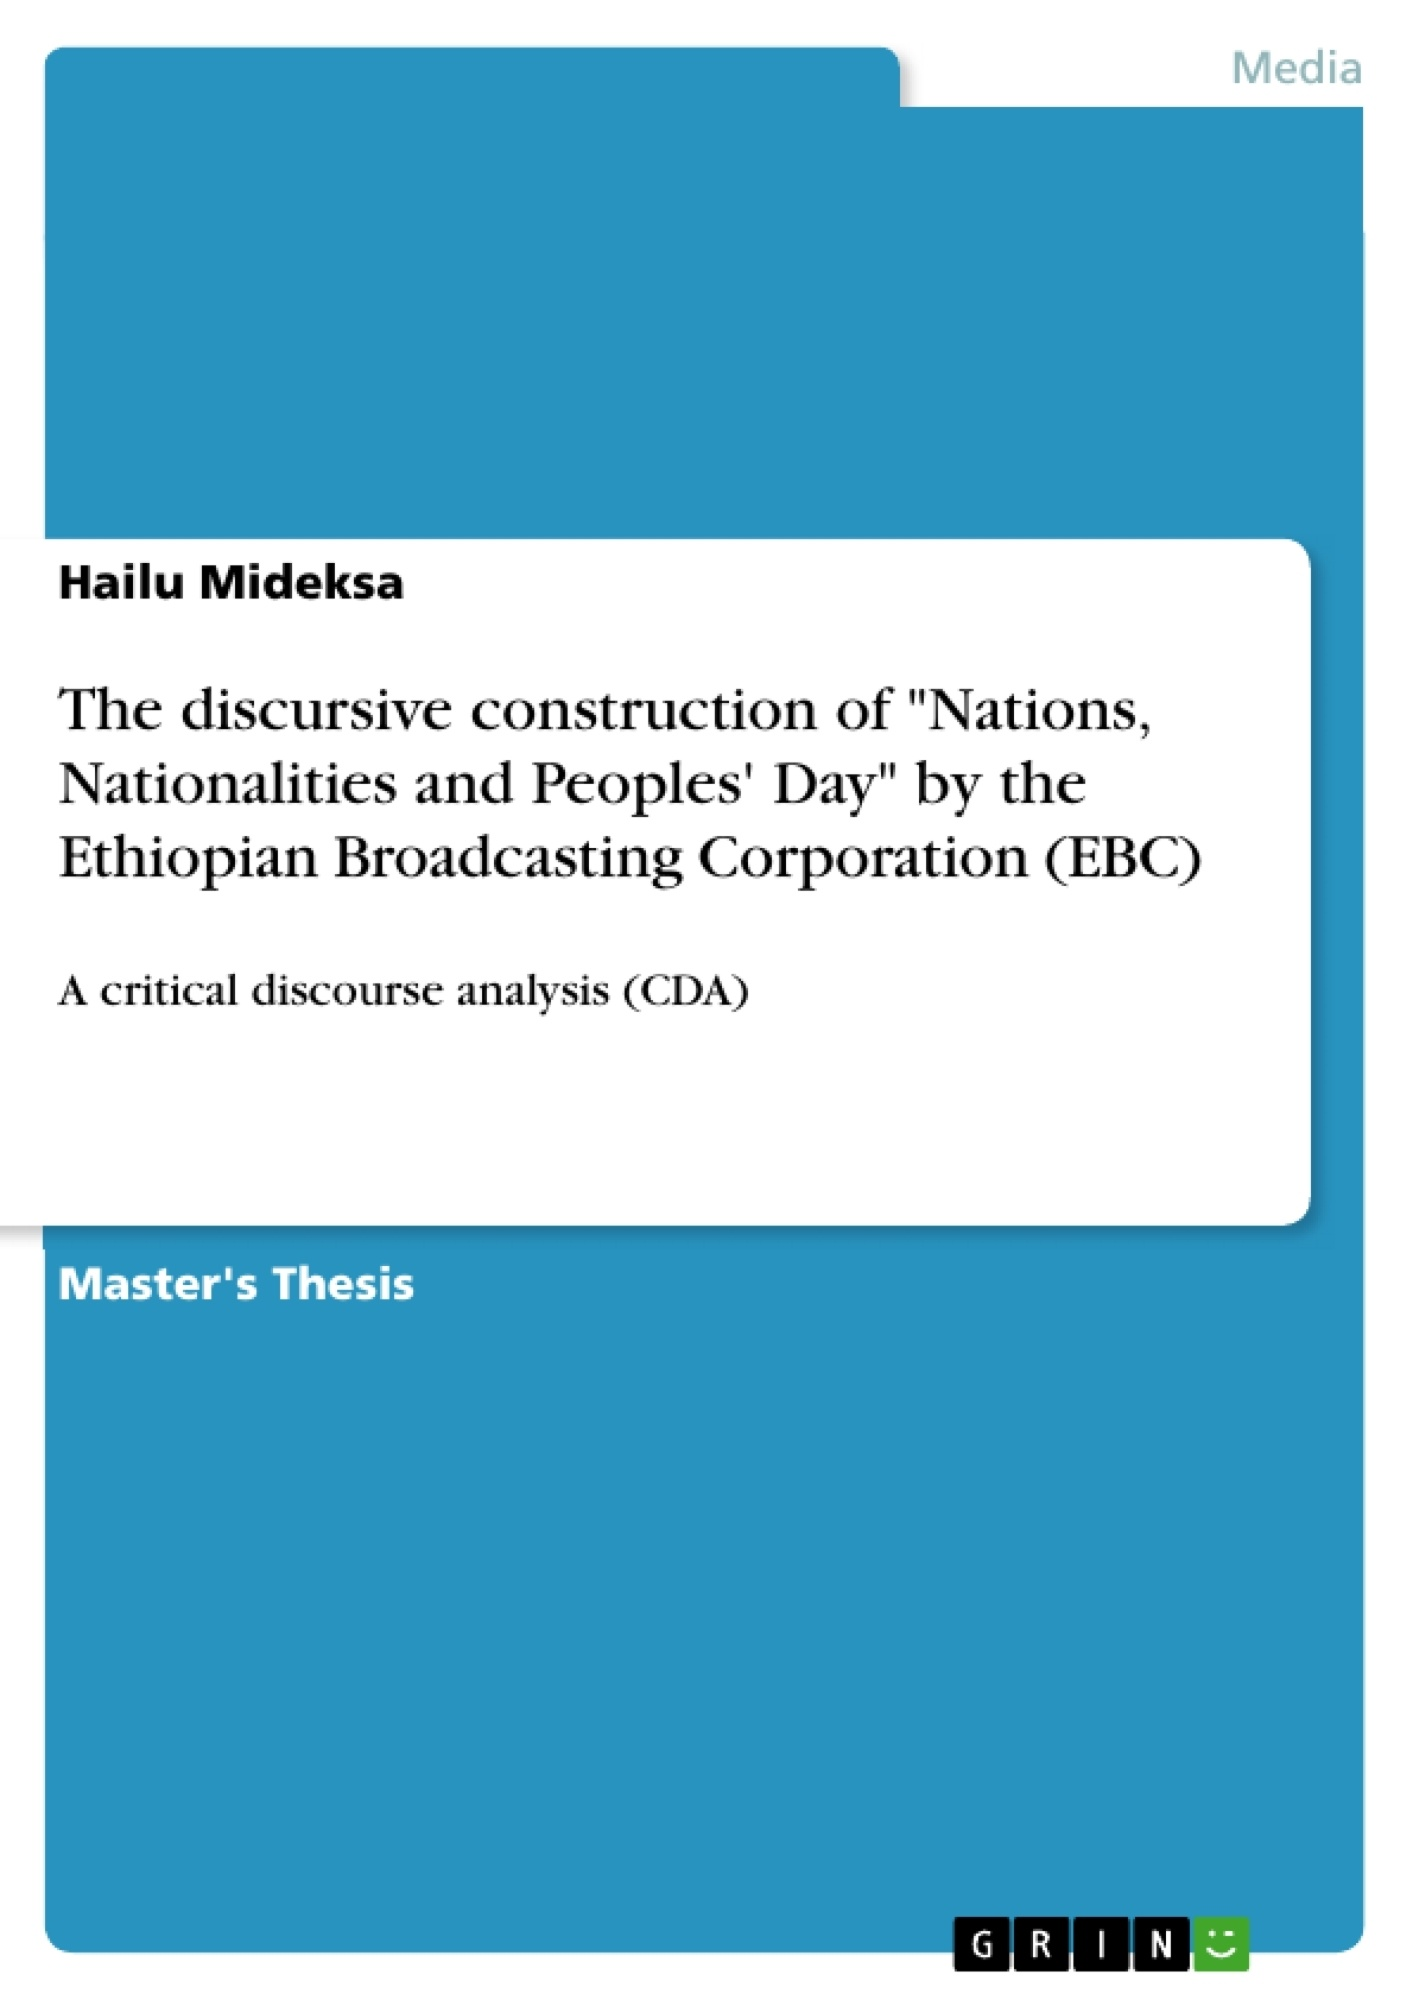 """Title: The discursive construction of """"Nations, Nationalities and Peoples' Day"""" by the Ethiopian Broadcasting Corporation (EBC)"""